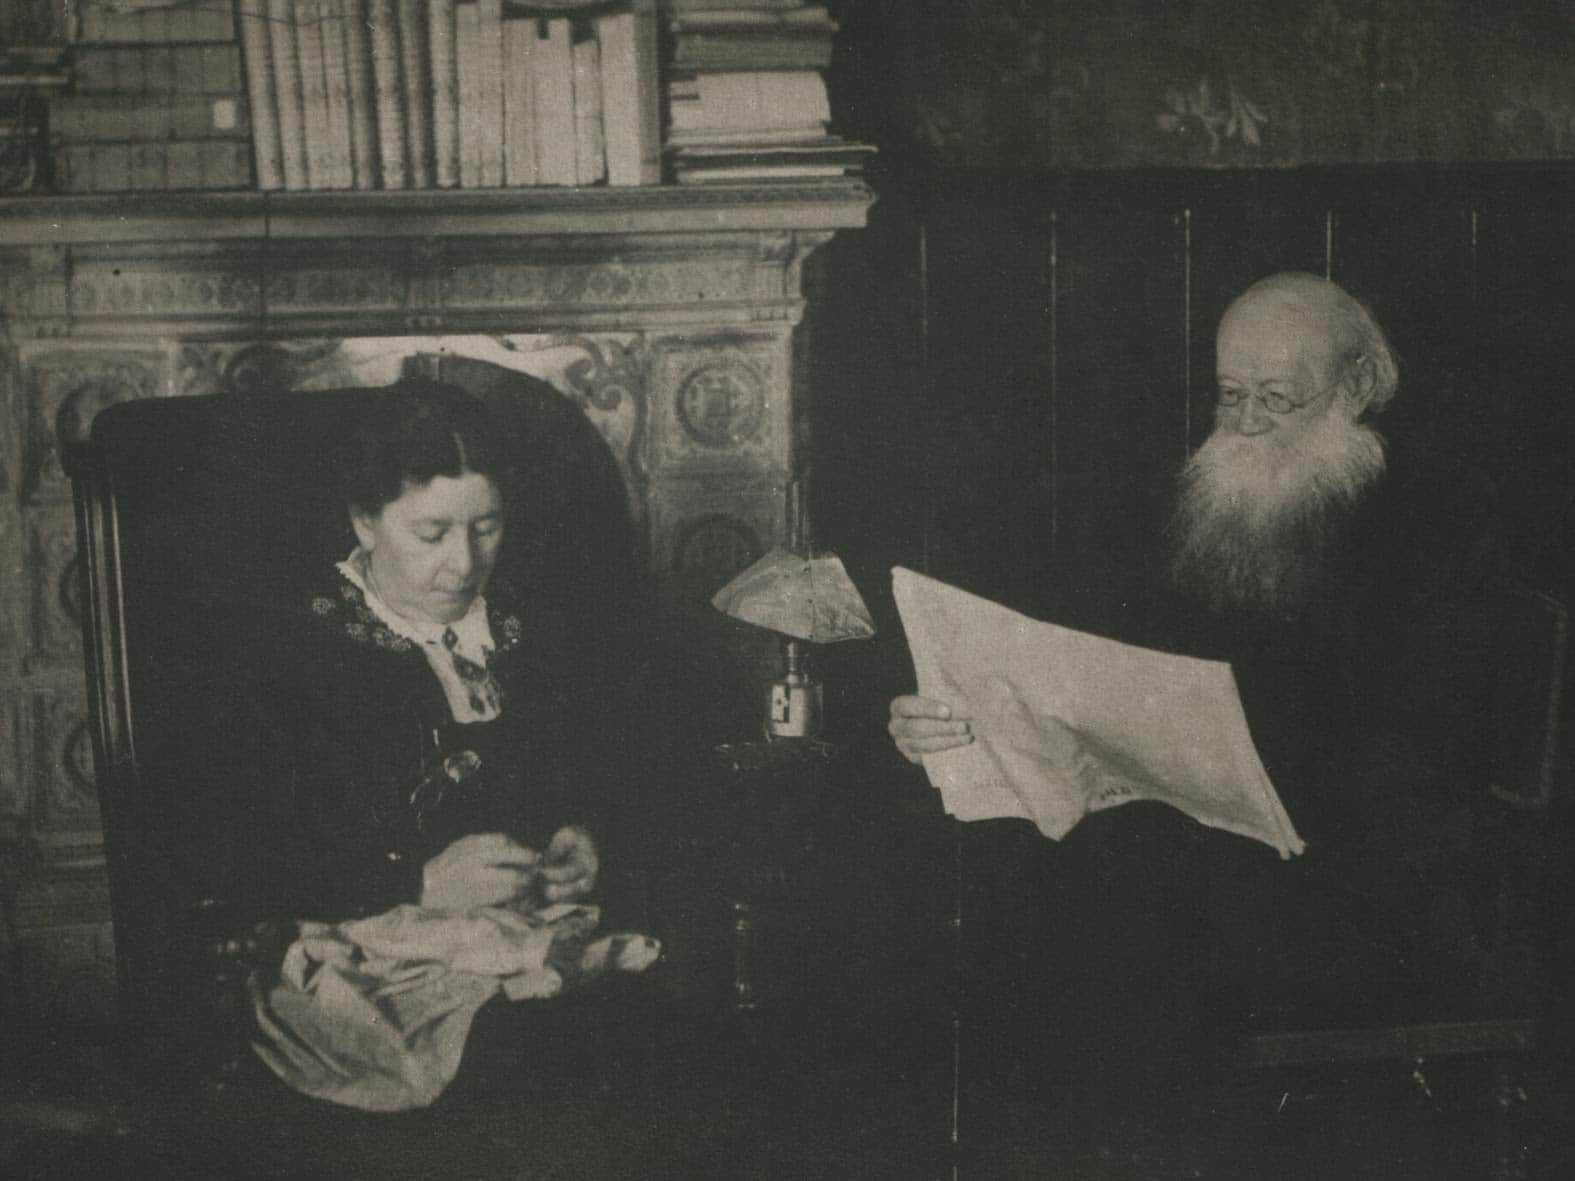 P.A.Kropotkin and his wife Sophia Grigorievna in their Dmitrov house